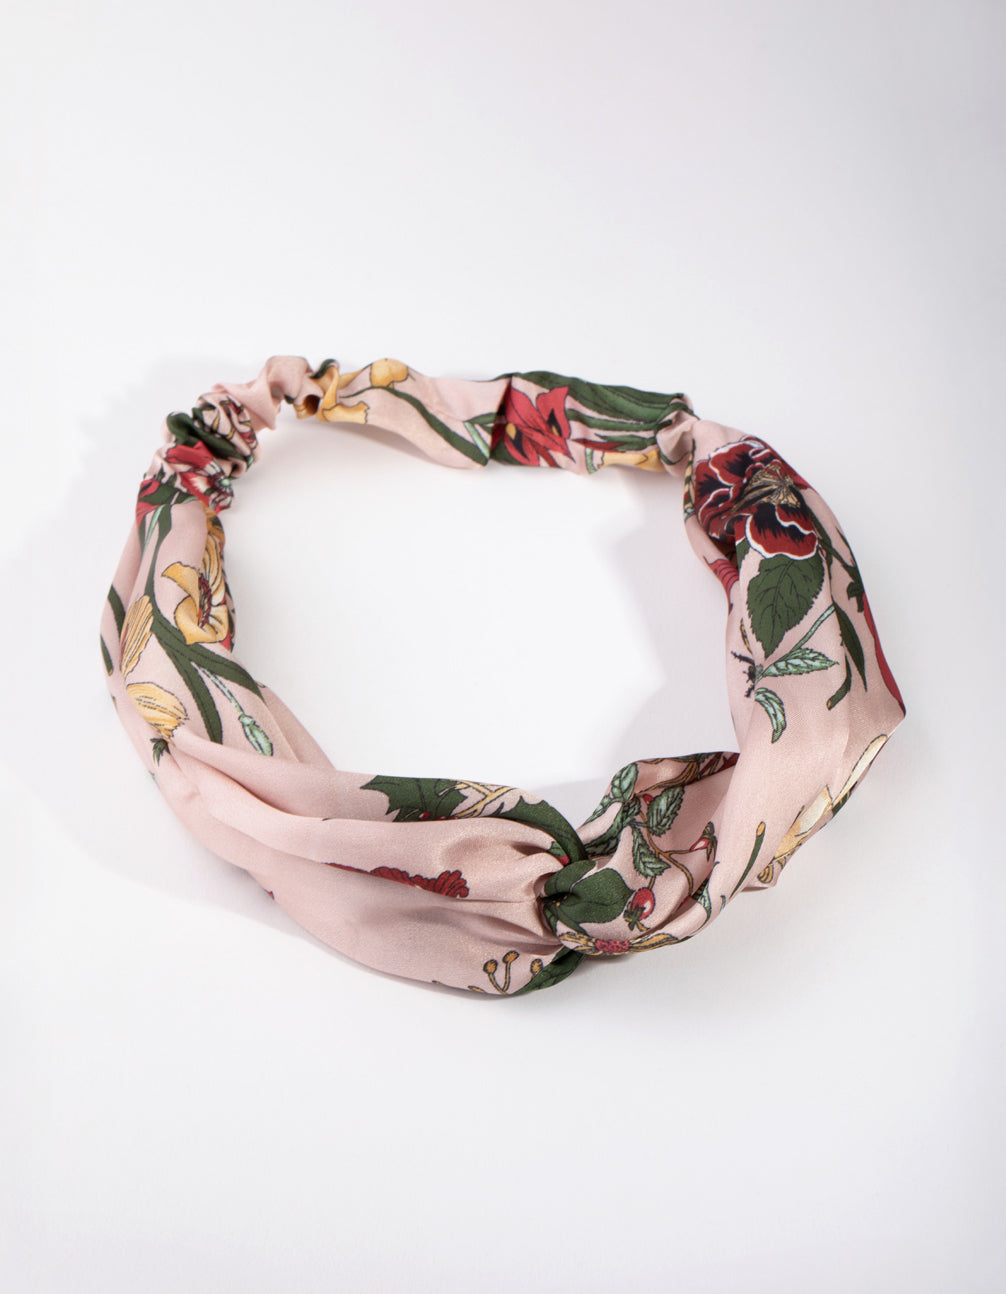 Fabric Floral Stretch Turban Headband